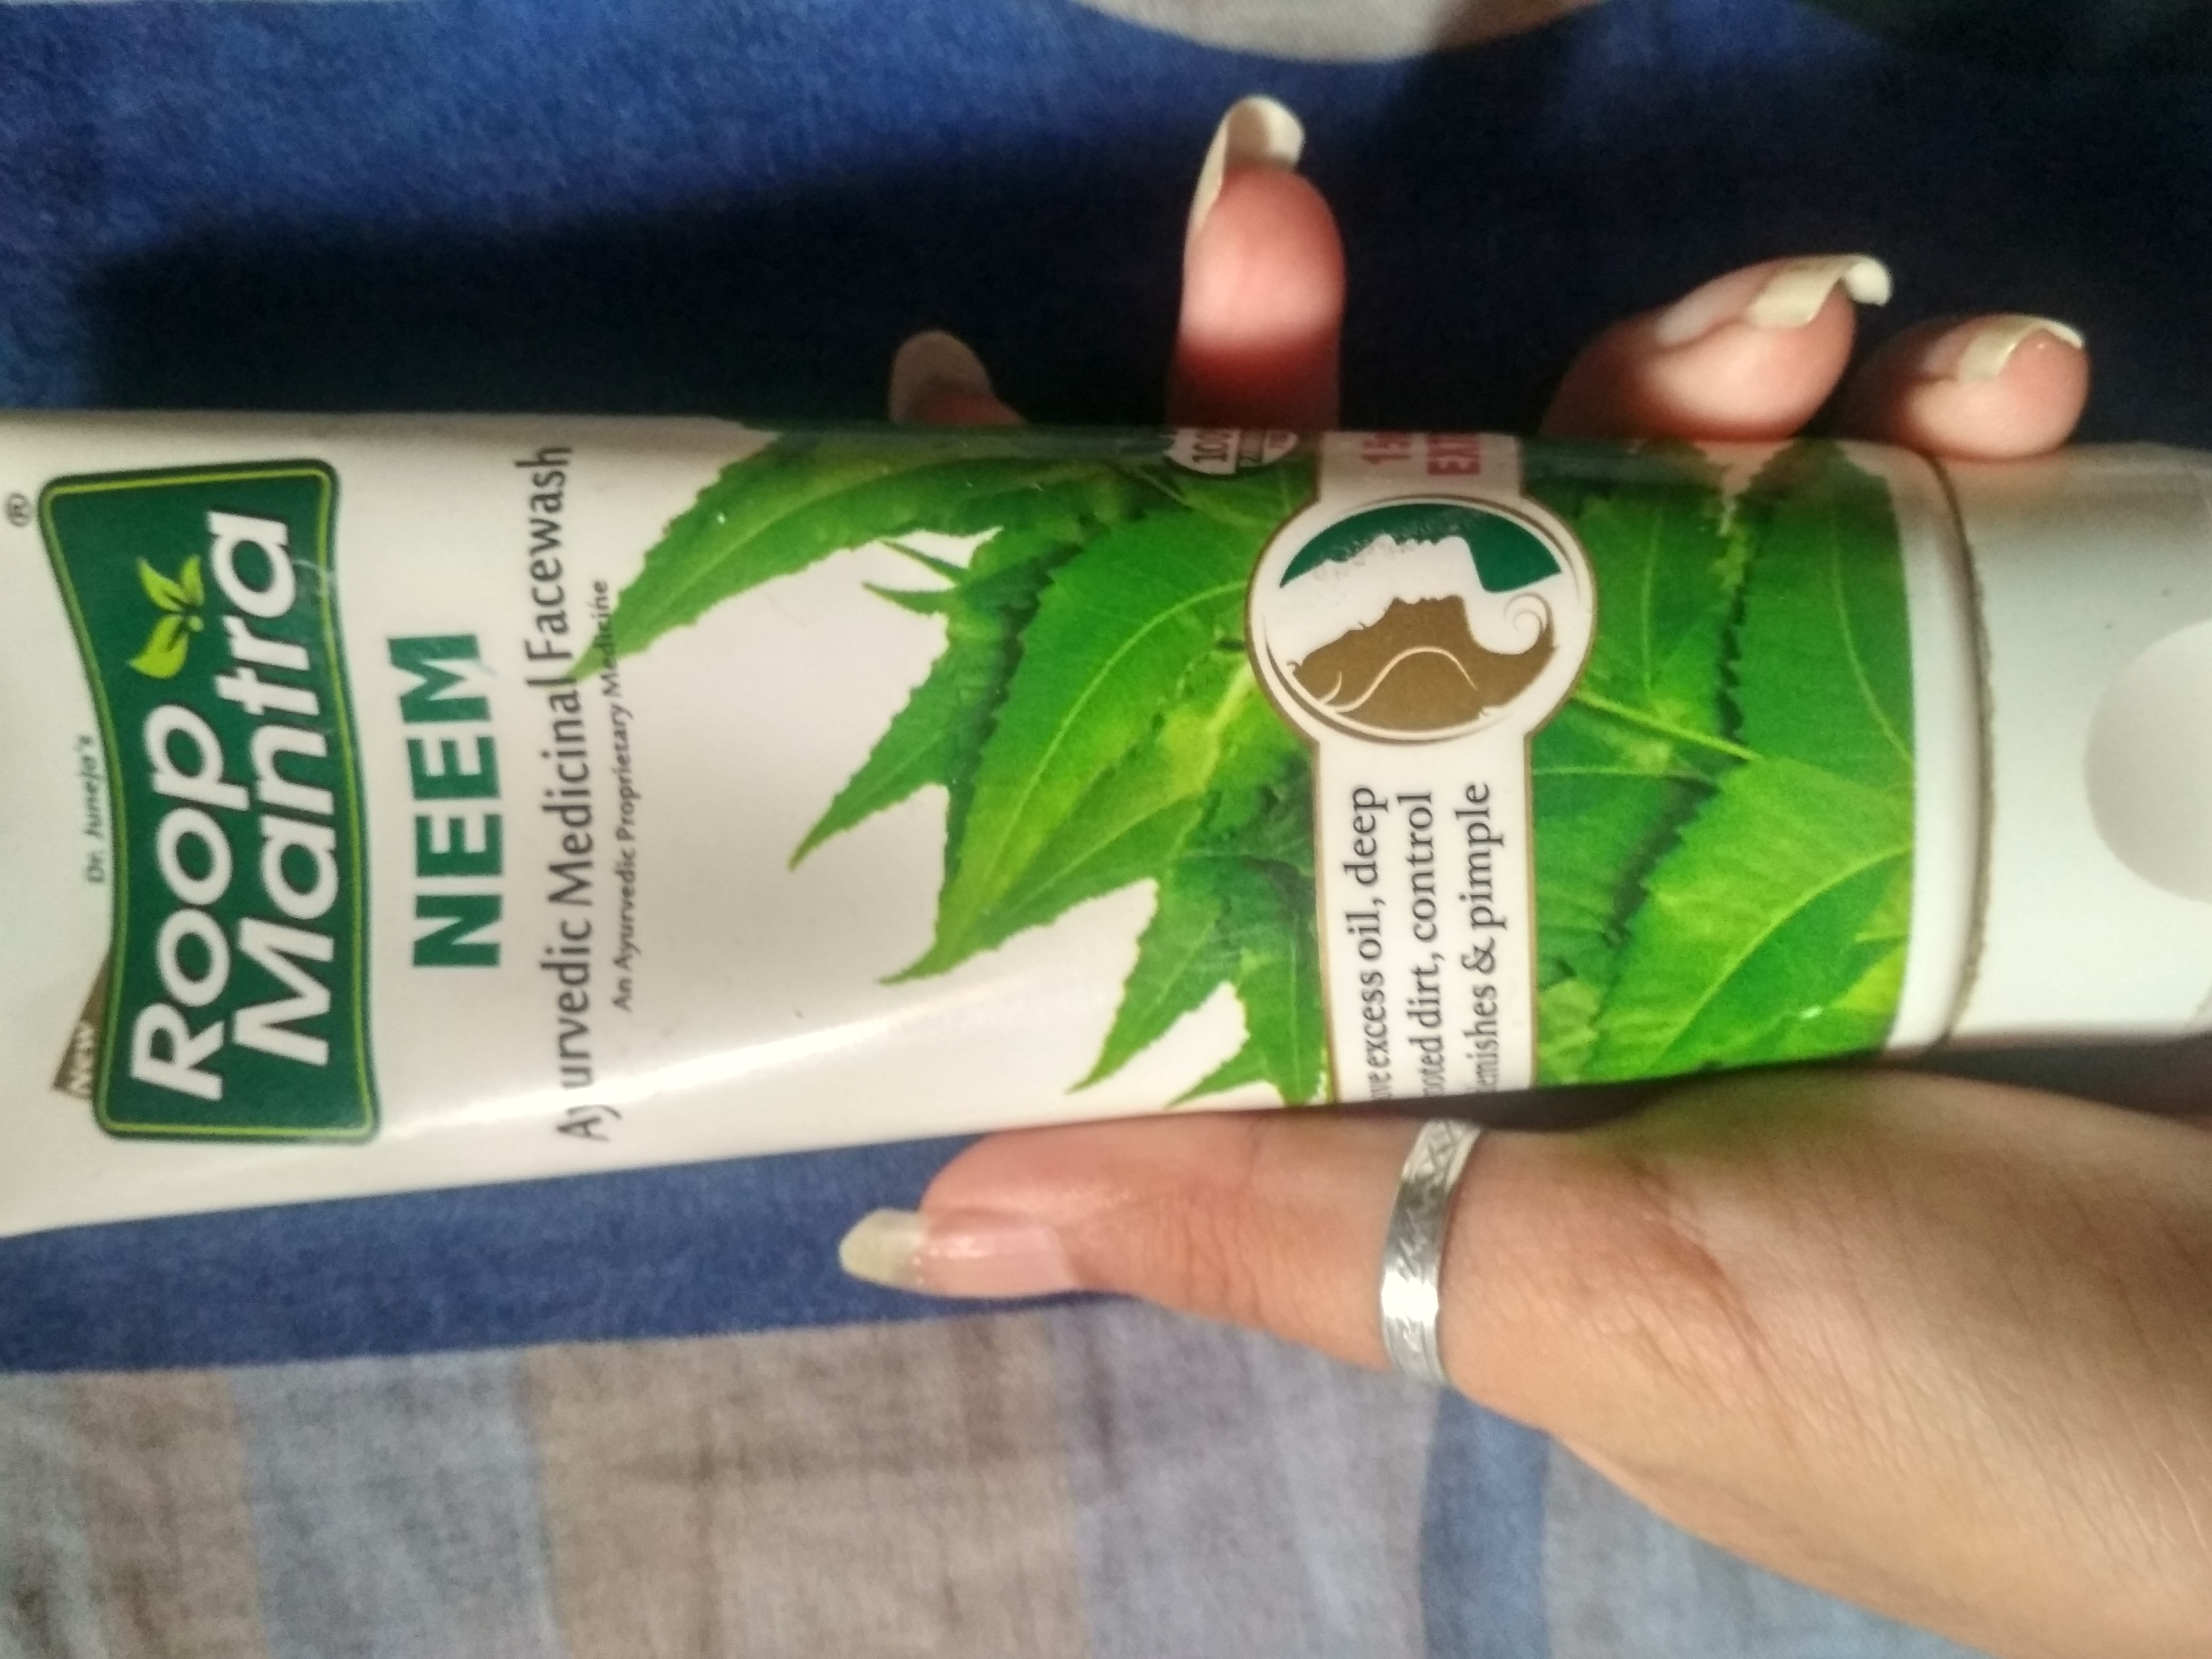 Roop Mantra Neem Face Wash -Works right-By prerna1121